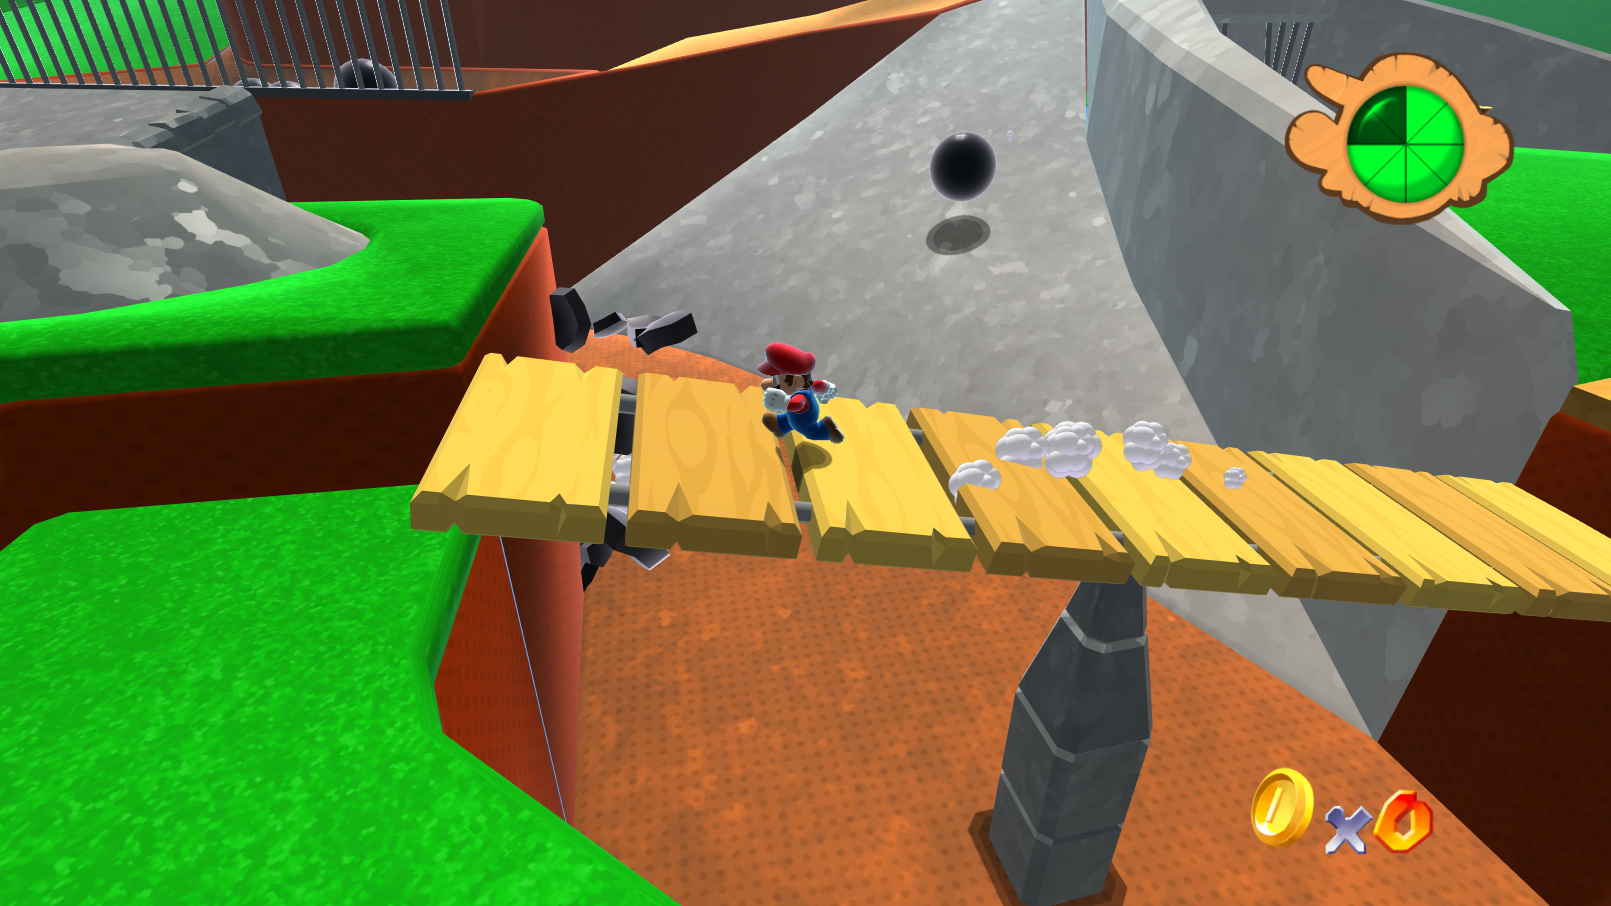 Super Mario 64 HD - The classic N64 game, revamped in HD for Mac